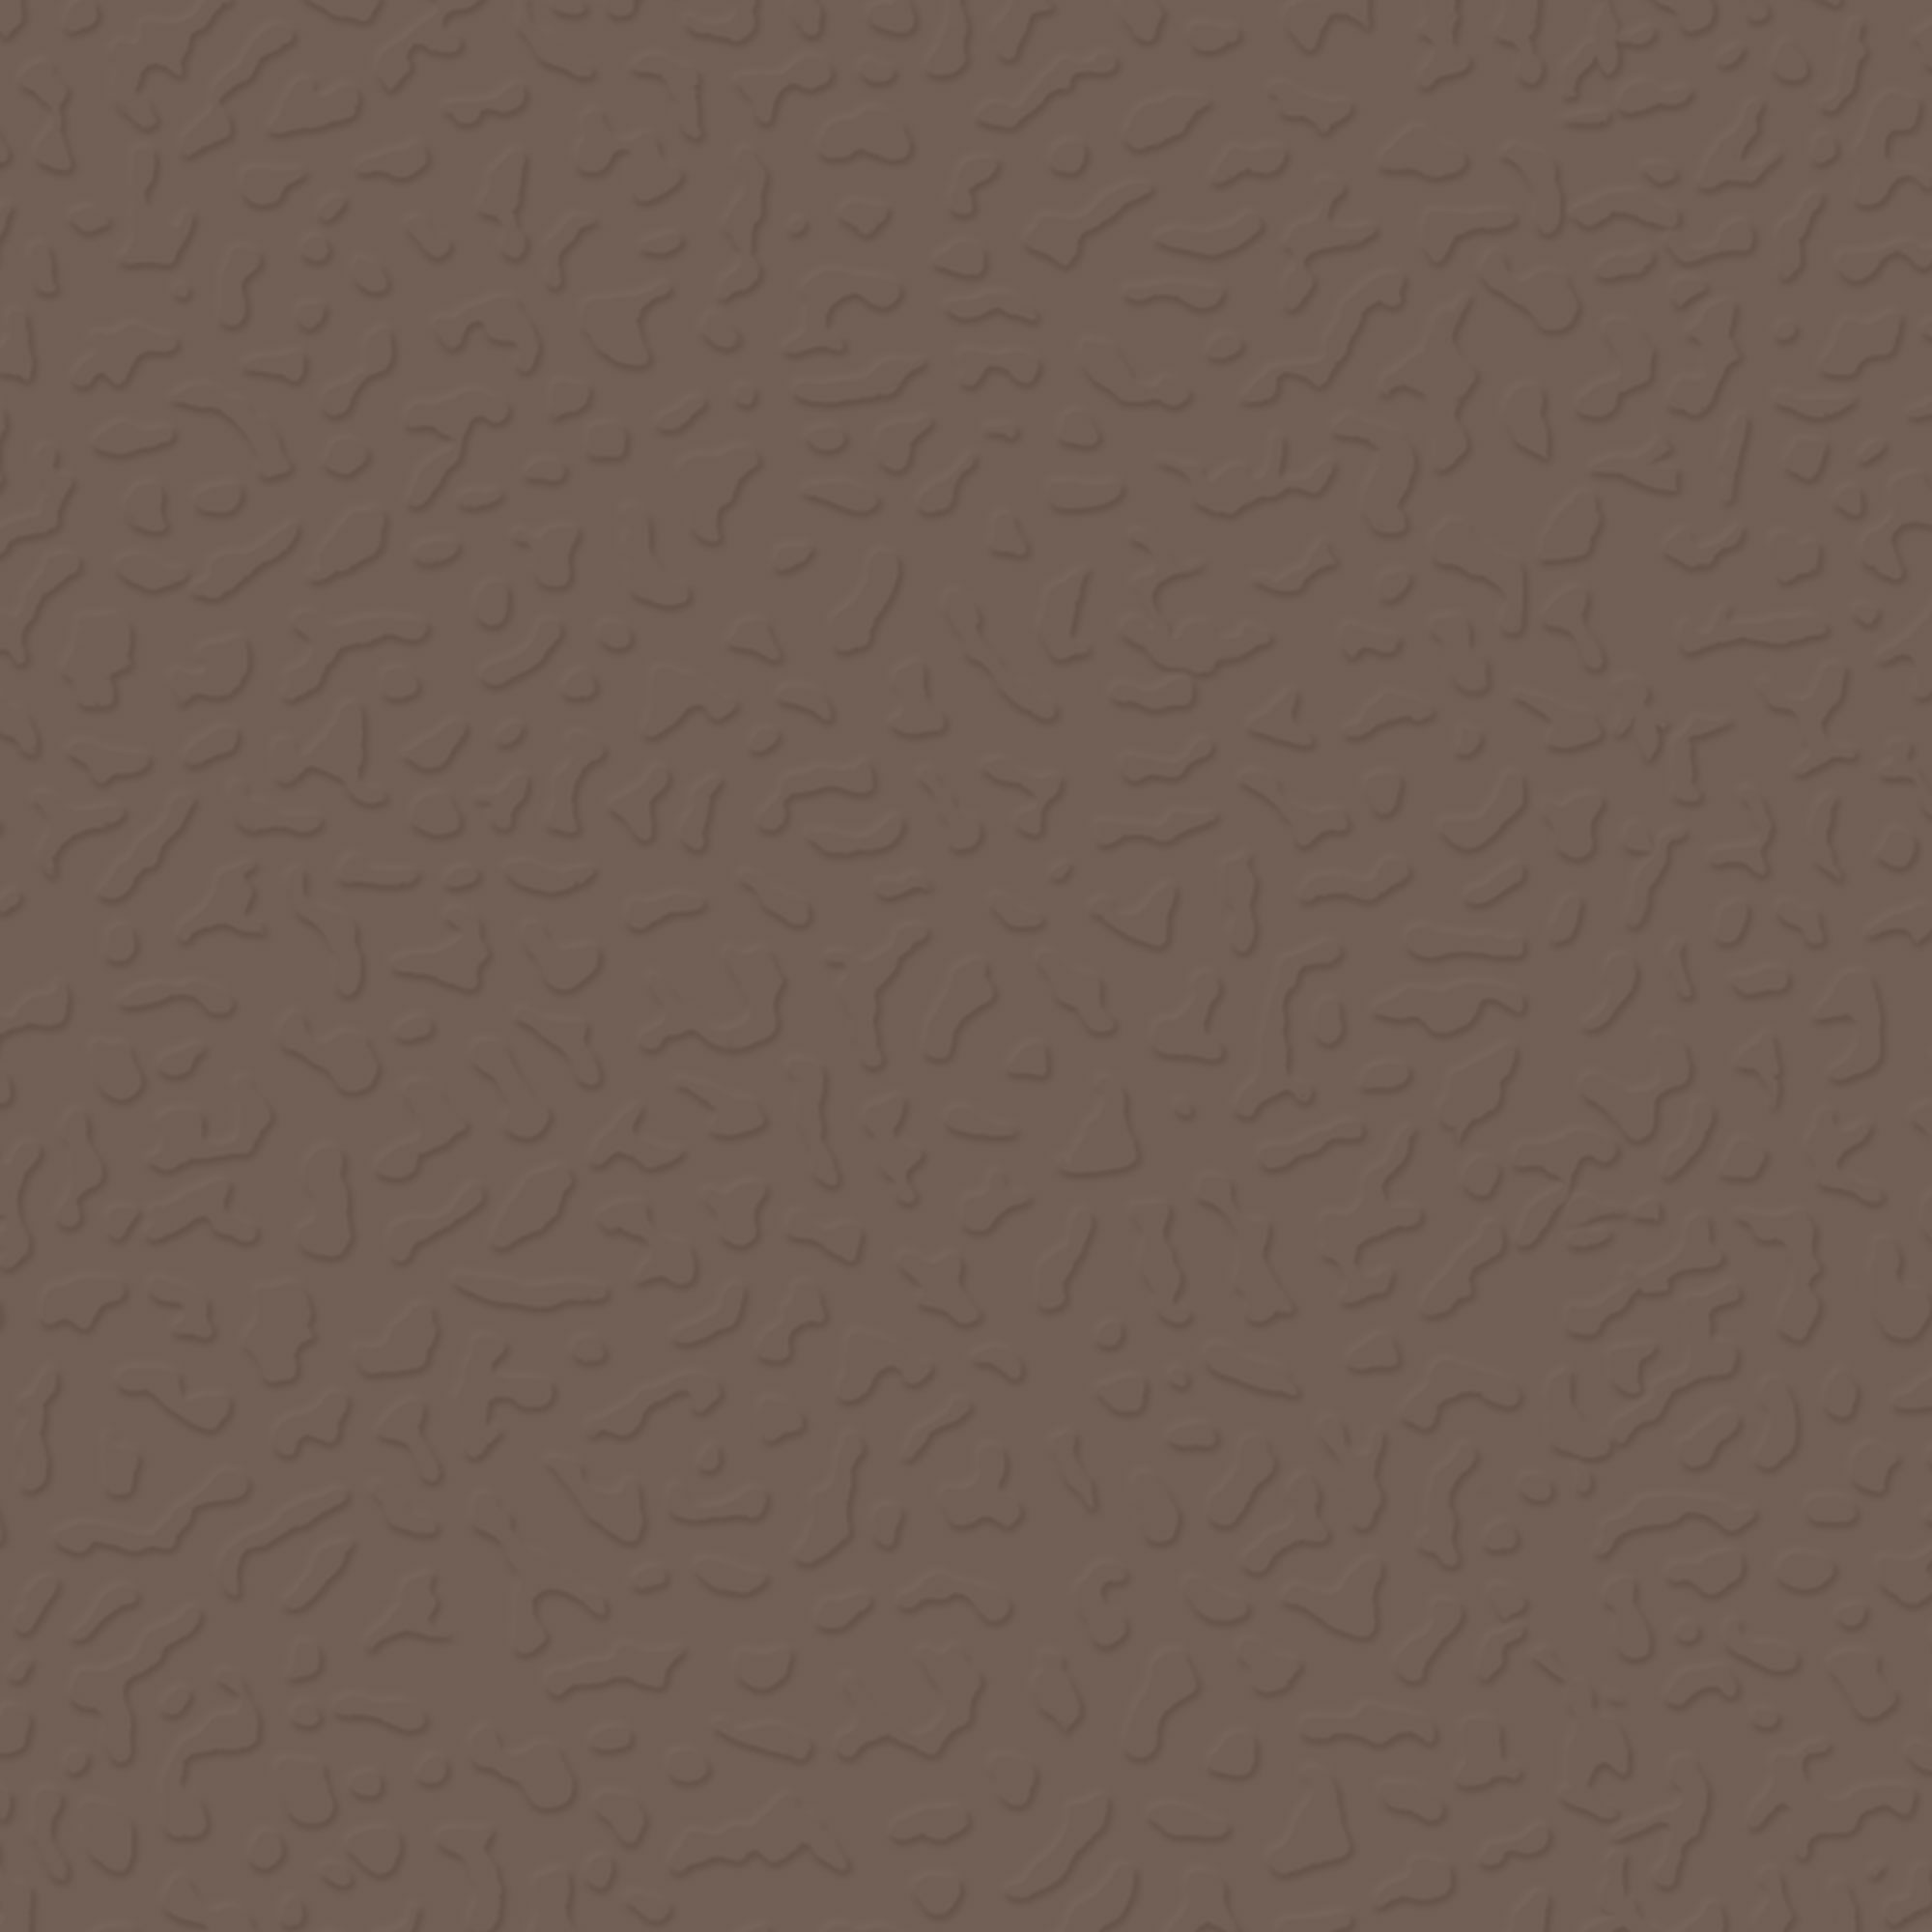 Roppe Rubber Tile 900 - Textured Design (993) Toffee LB996182